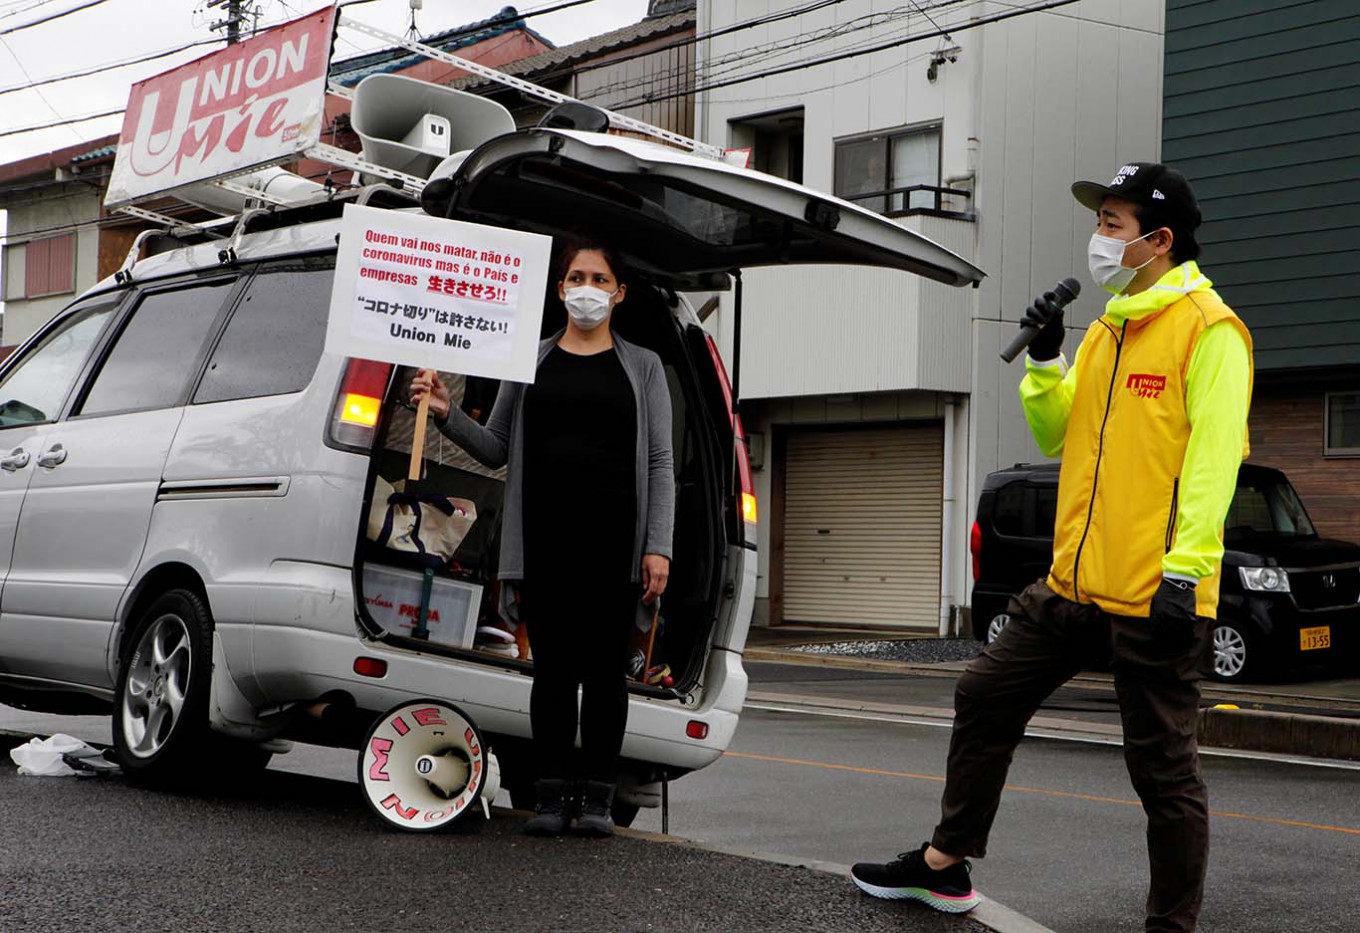 Foreign workers feel the pain of 'corona job cuts' in Japan